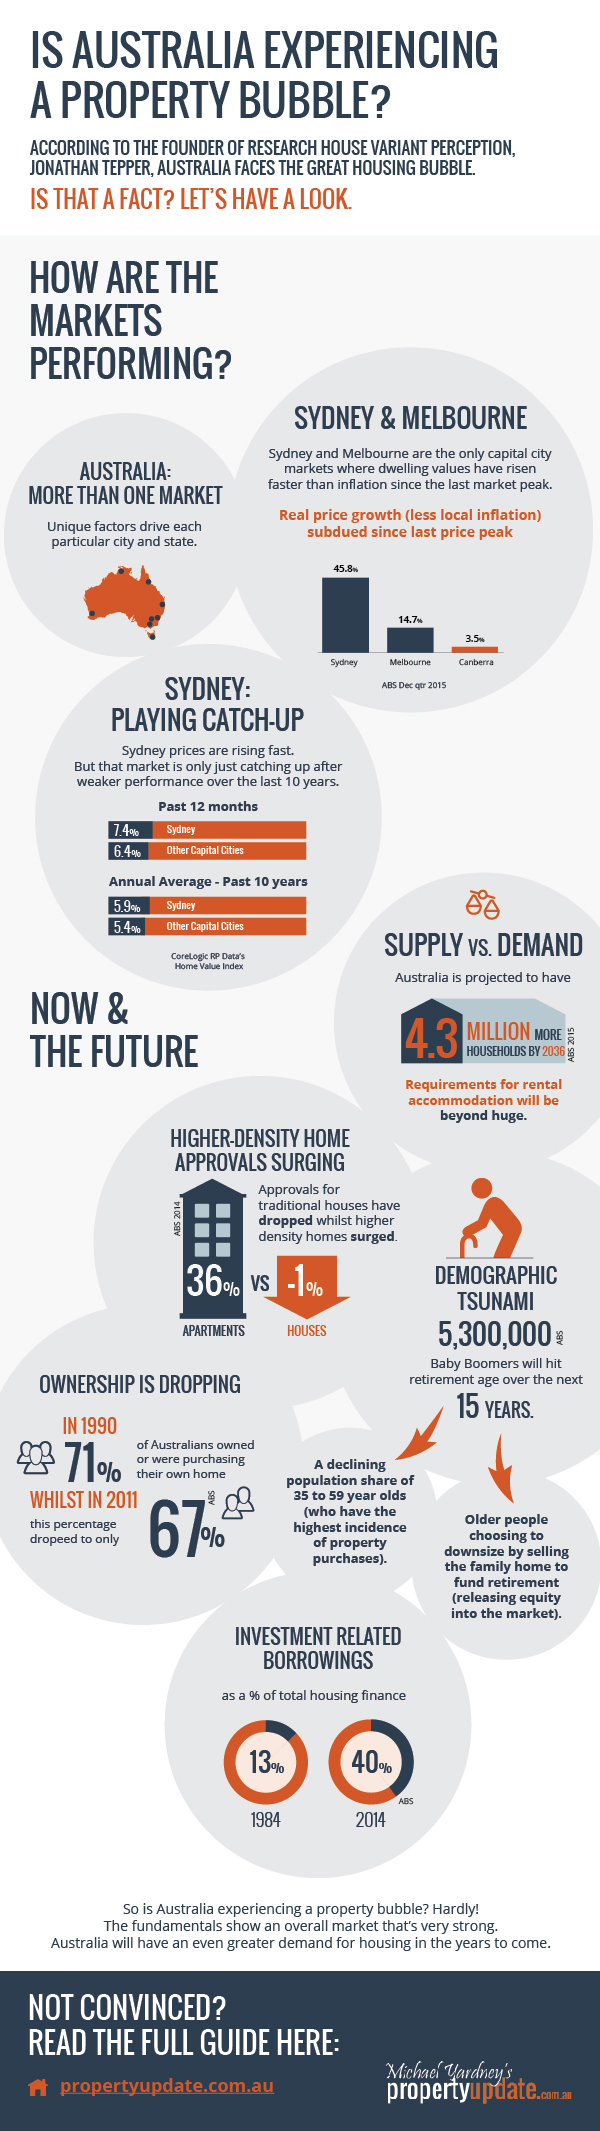 property-update-bubble-infographic V3